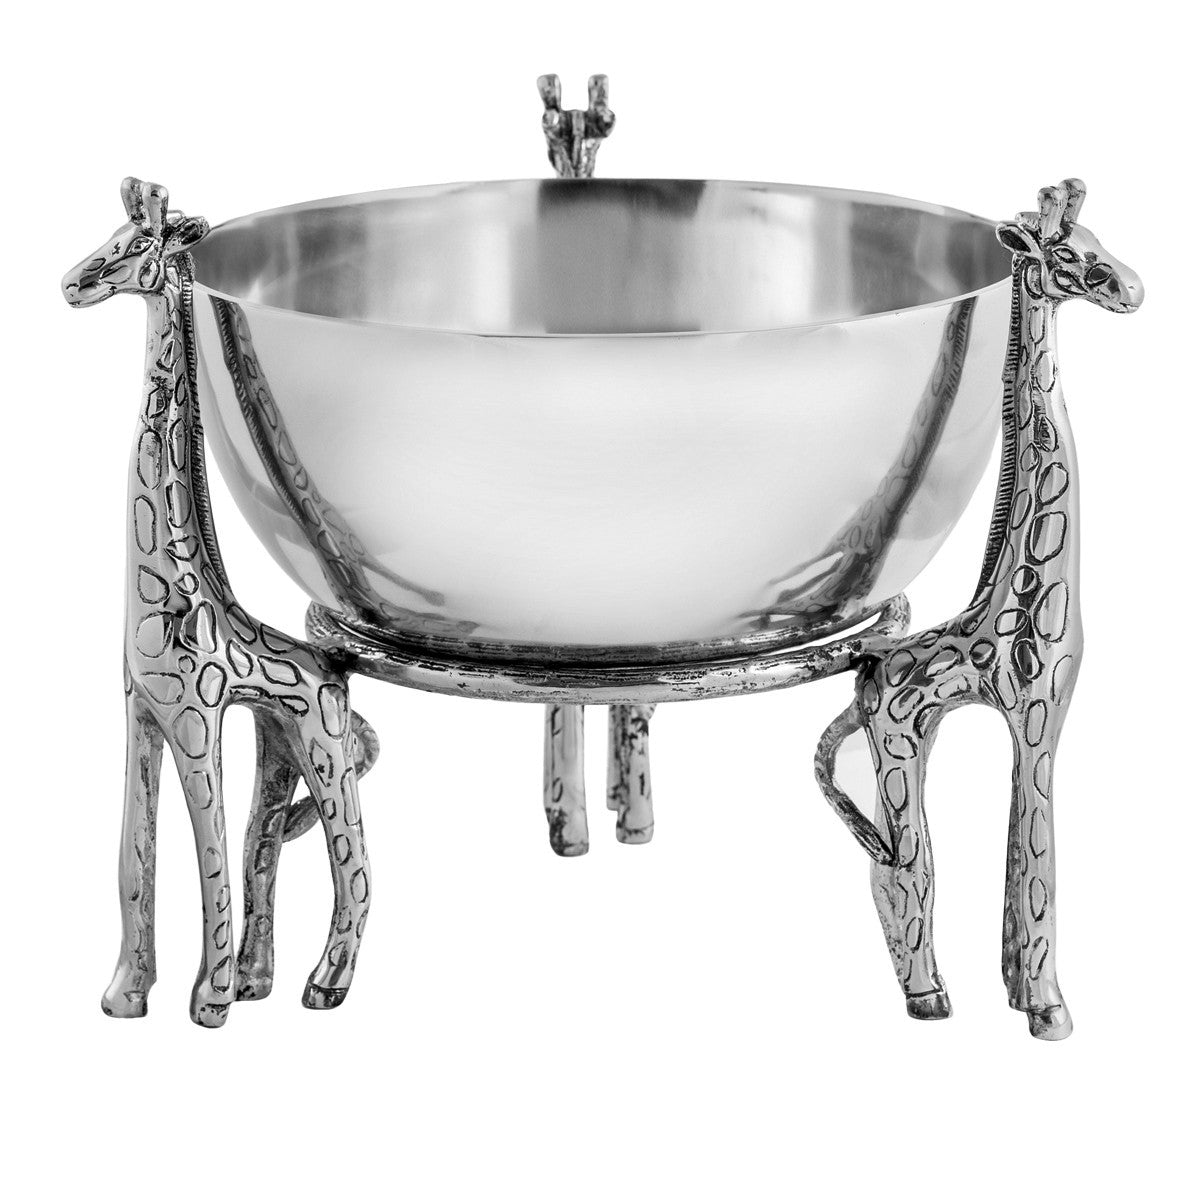 Safari 3-Giraffe Centerpiece Bowl